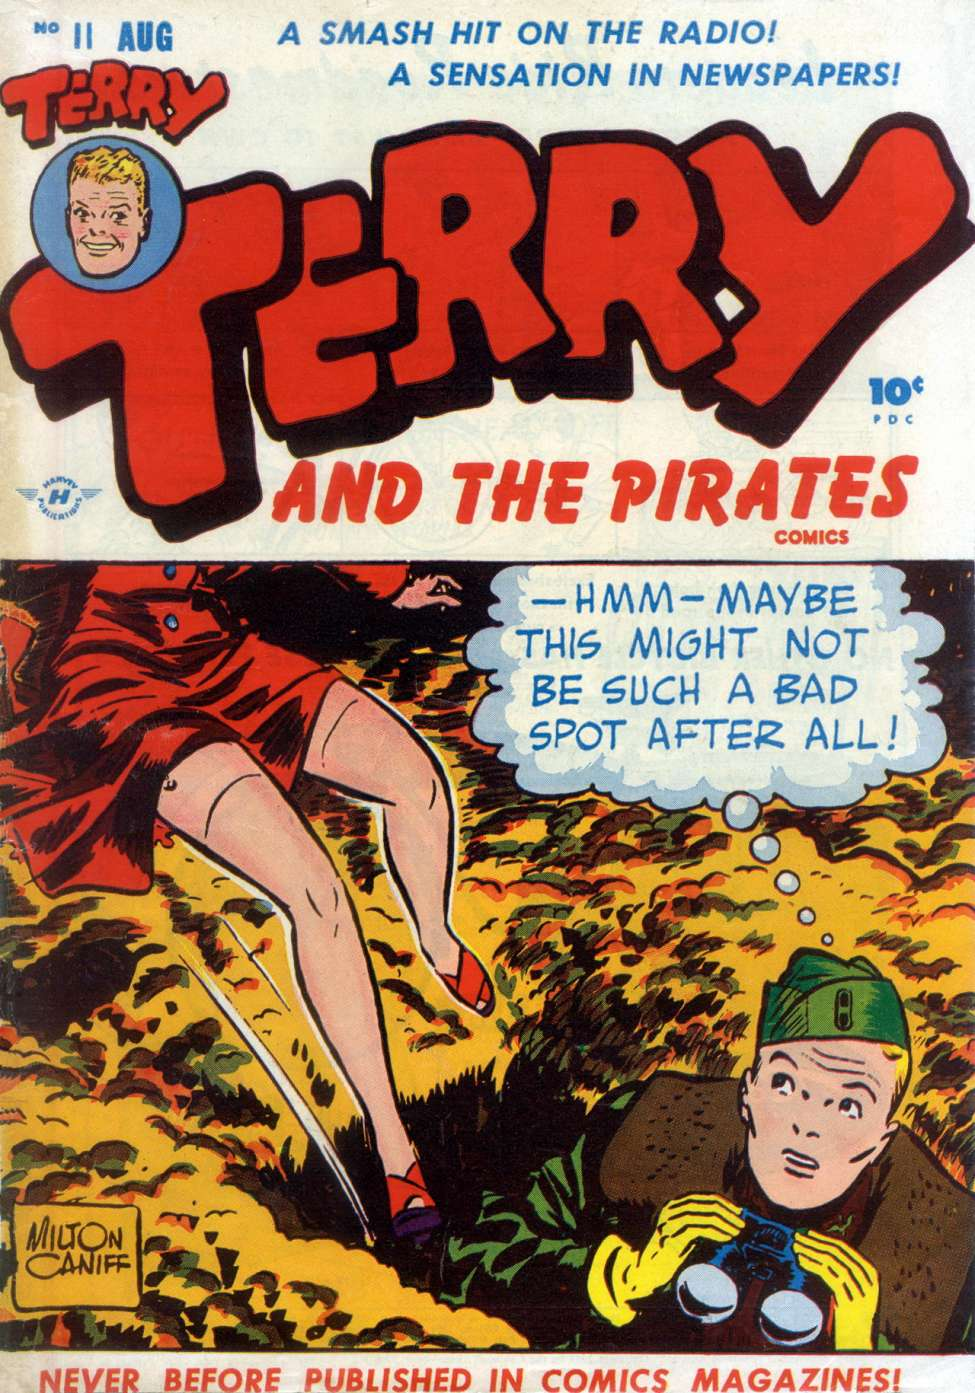 Terry and the Pirates #11, Harvey